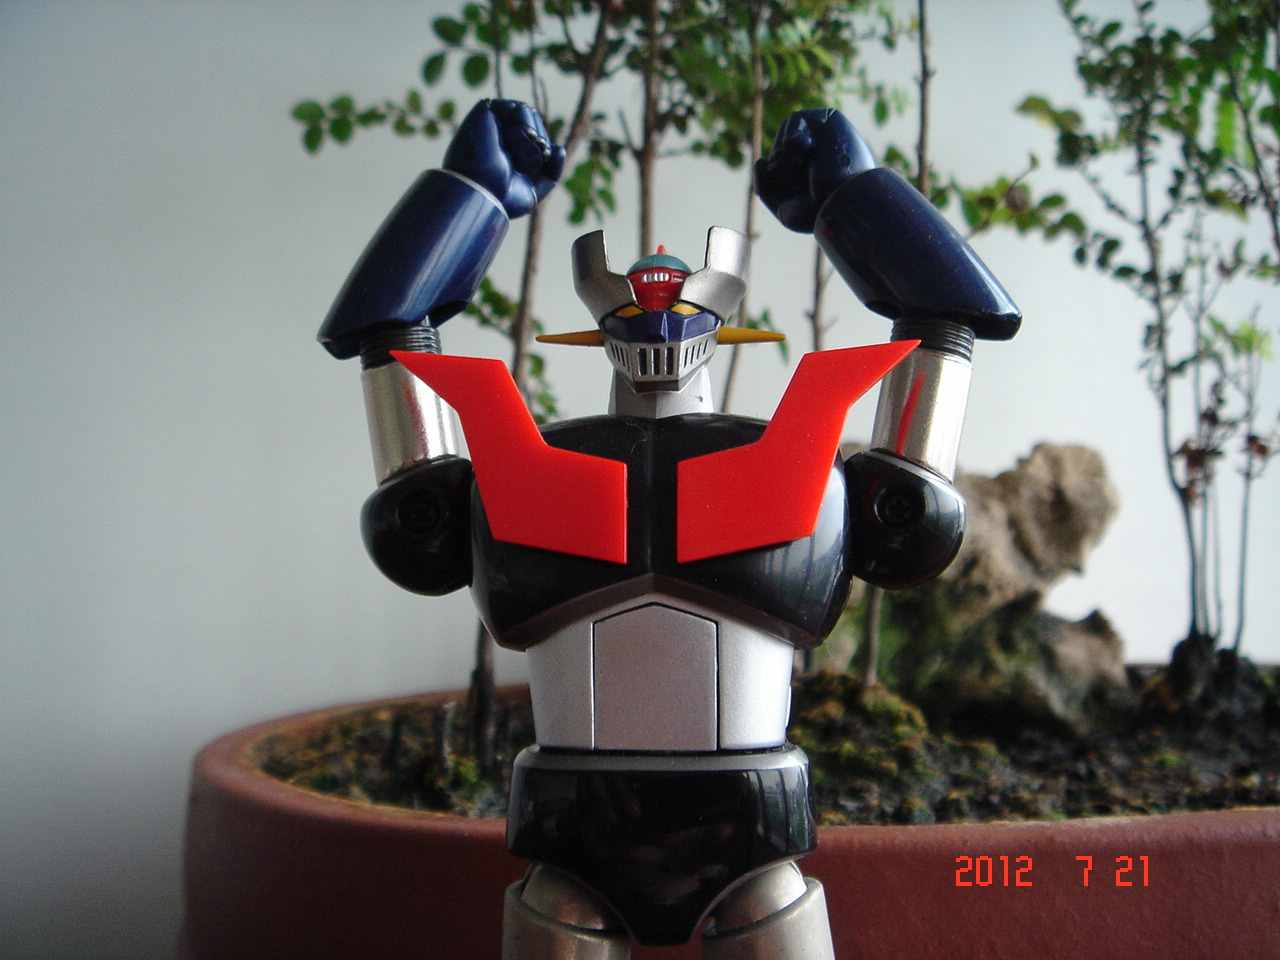 mazinger_z_ucc-office_0721001.jpg